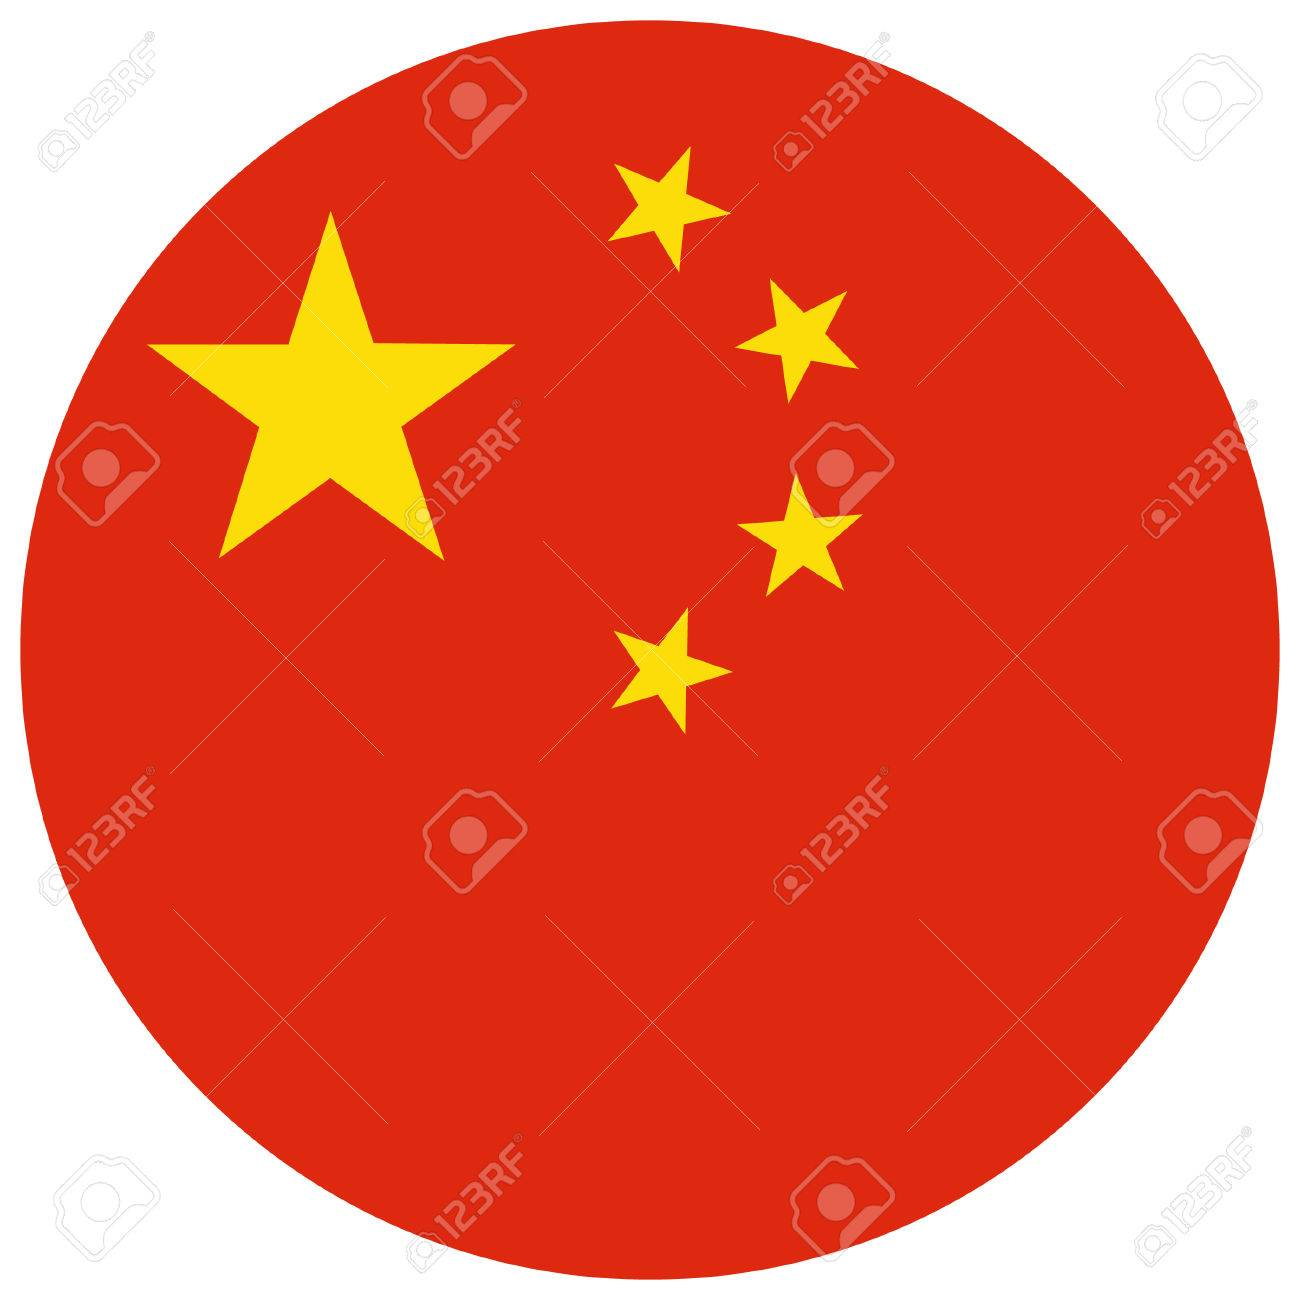 vector illustration of china flag round national flag of china rh 123rf com china map flag vector china flag vector eps free